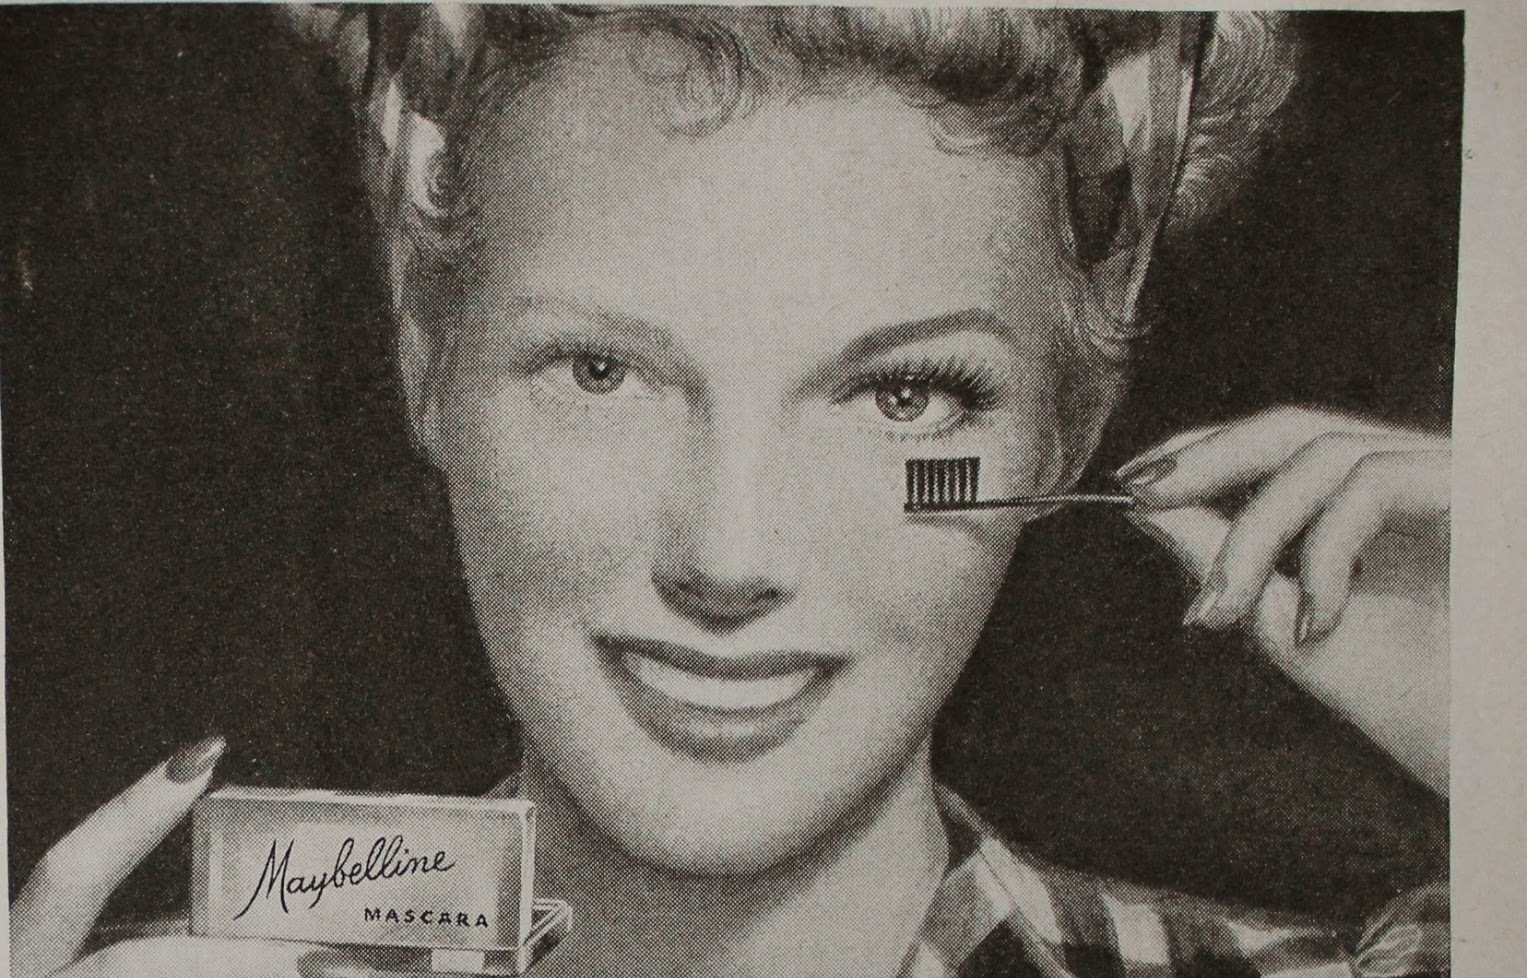 Vintage mascara advert